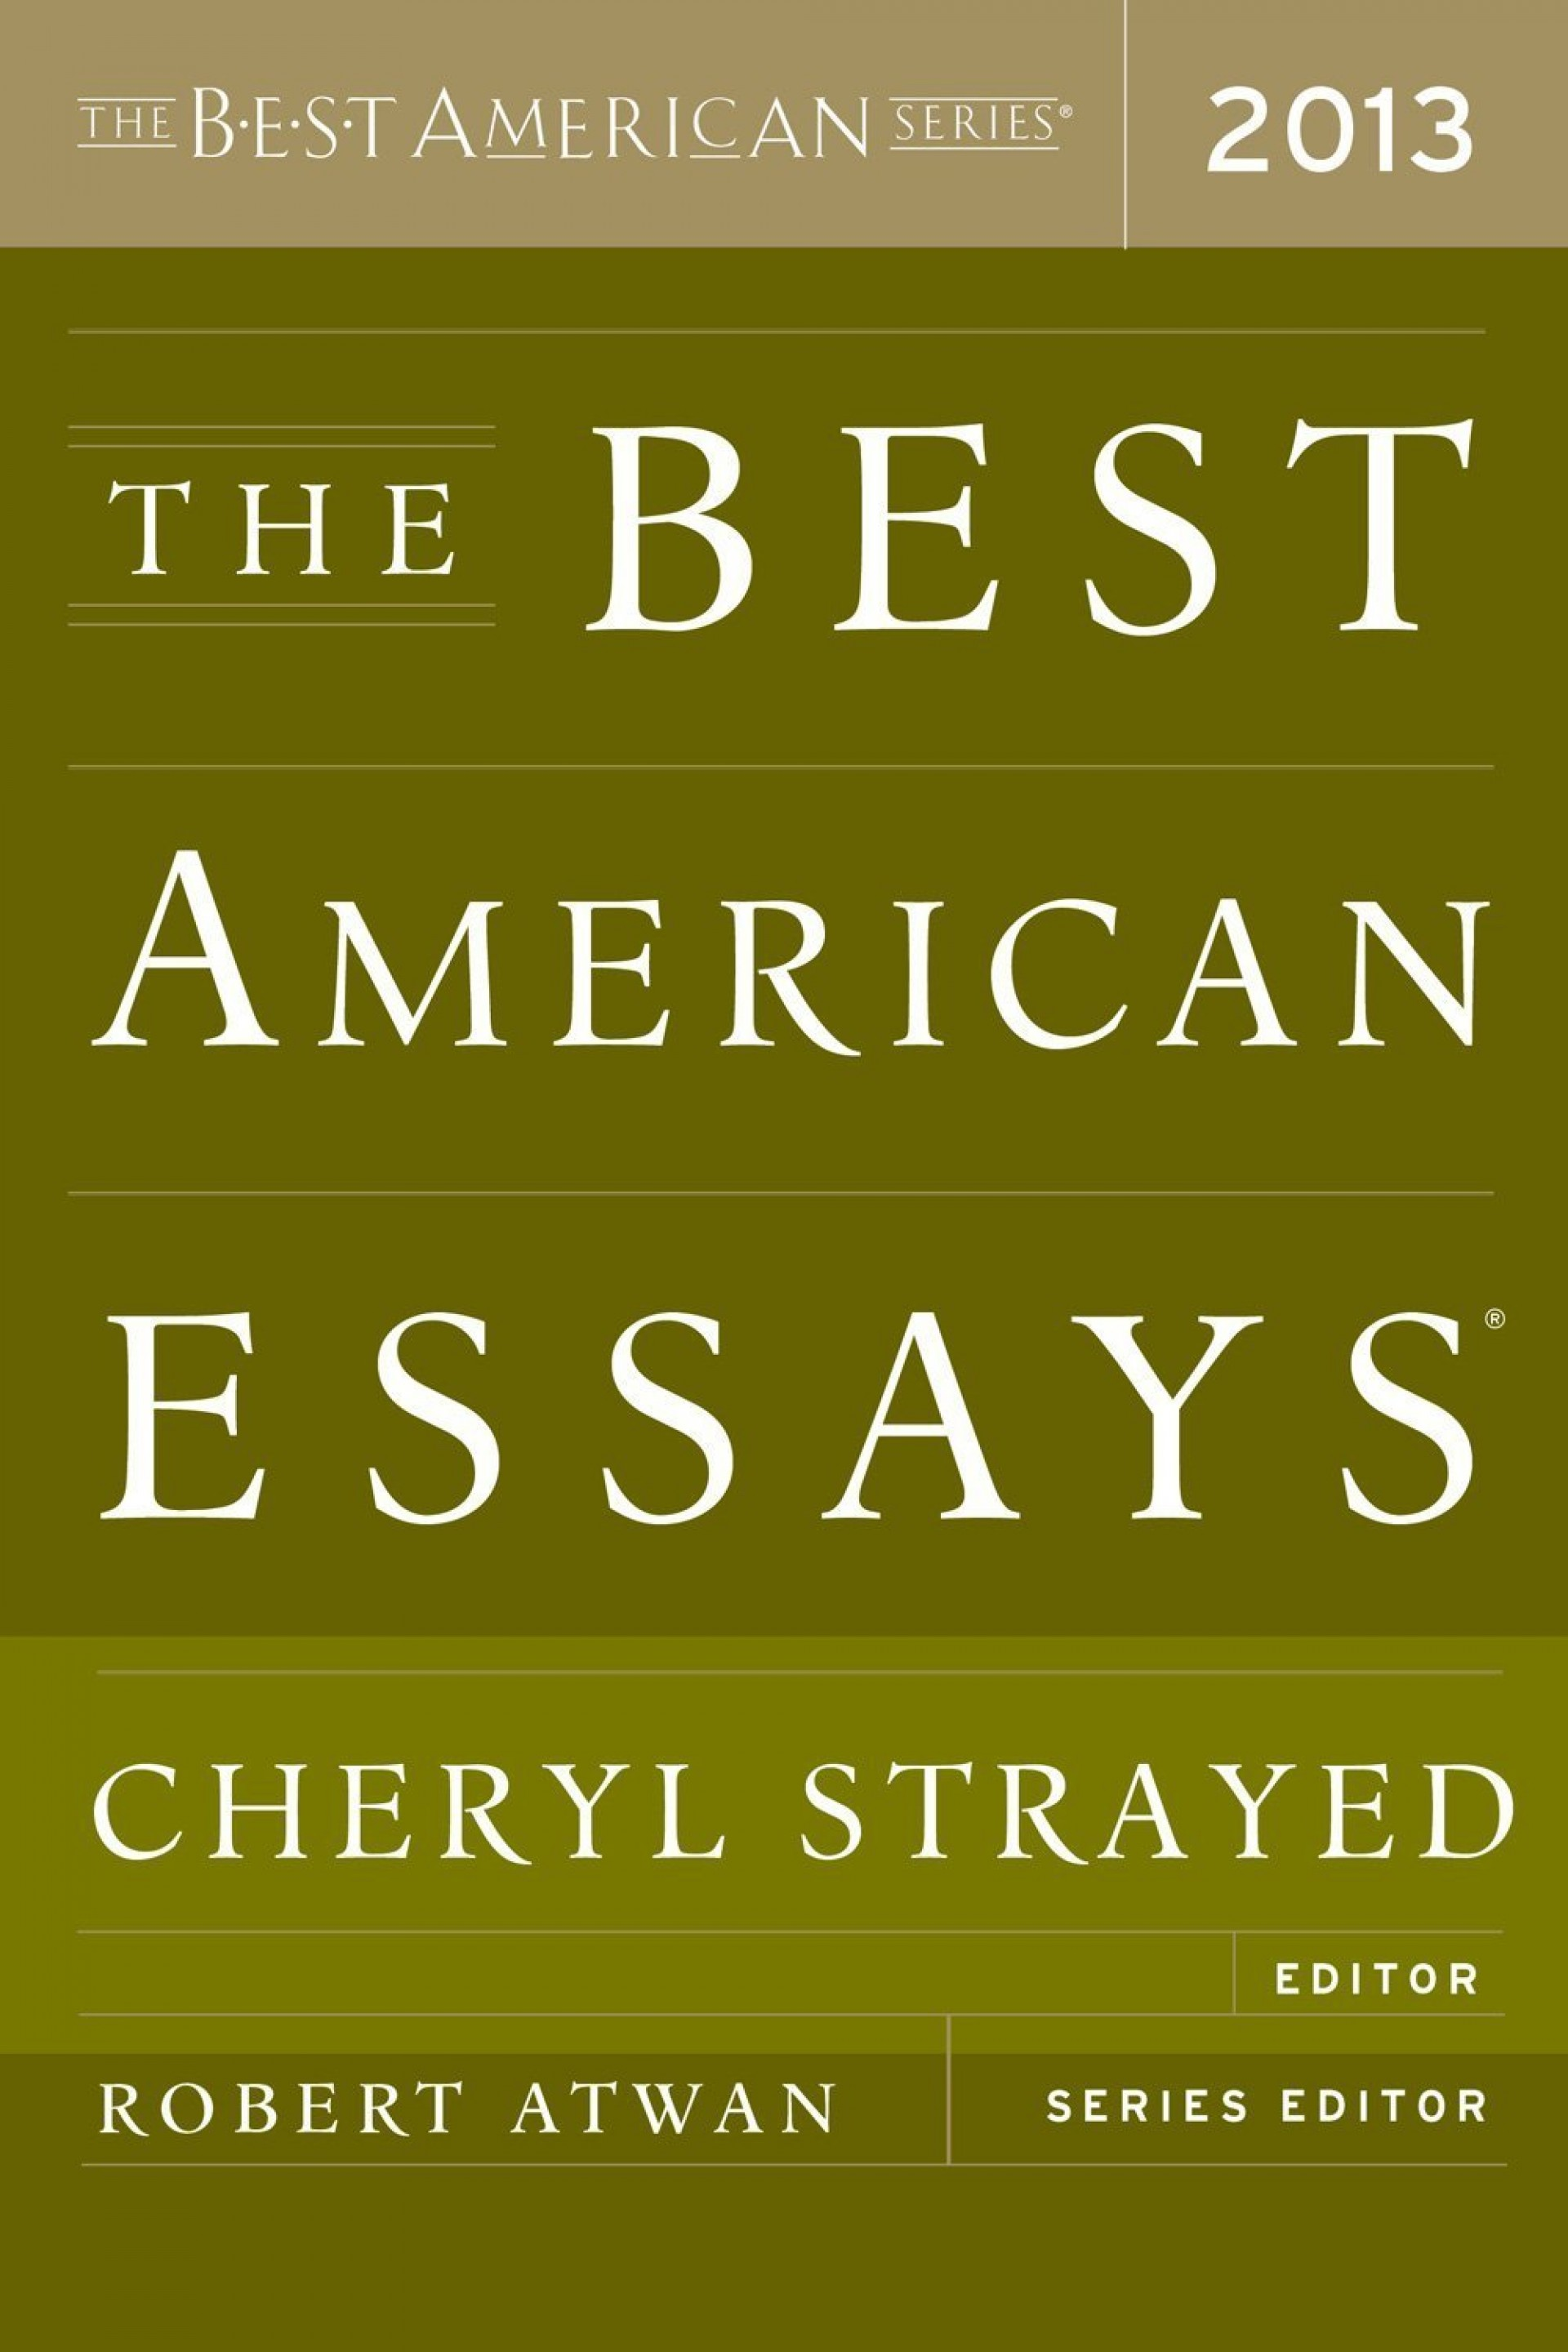 003 Best American Essays Essay Example Striking 2017 Pdf Submissions 2019 Of The Century Table Contents 1920